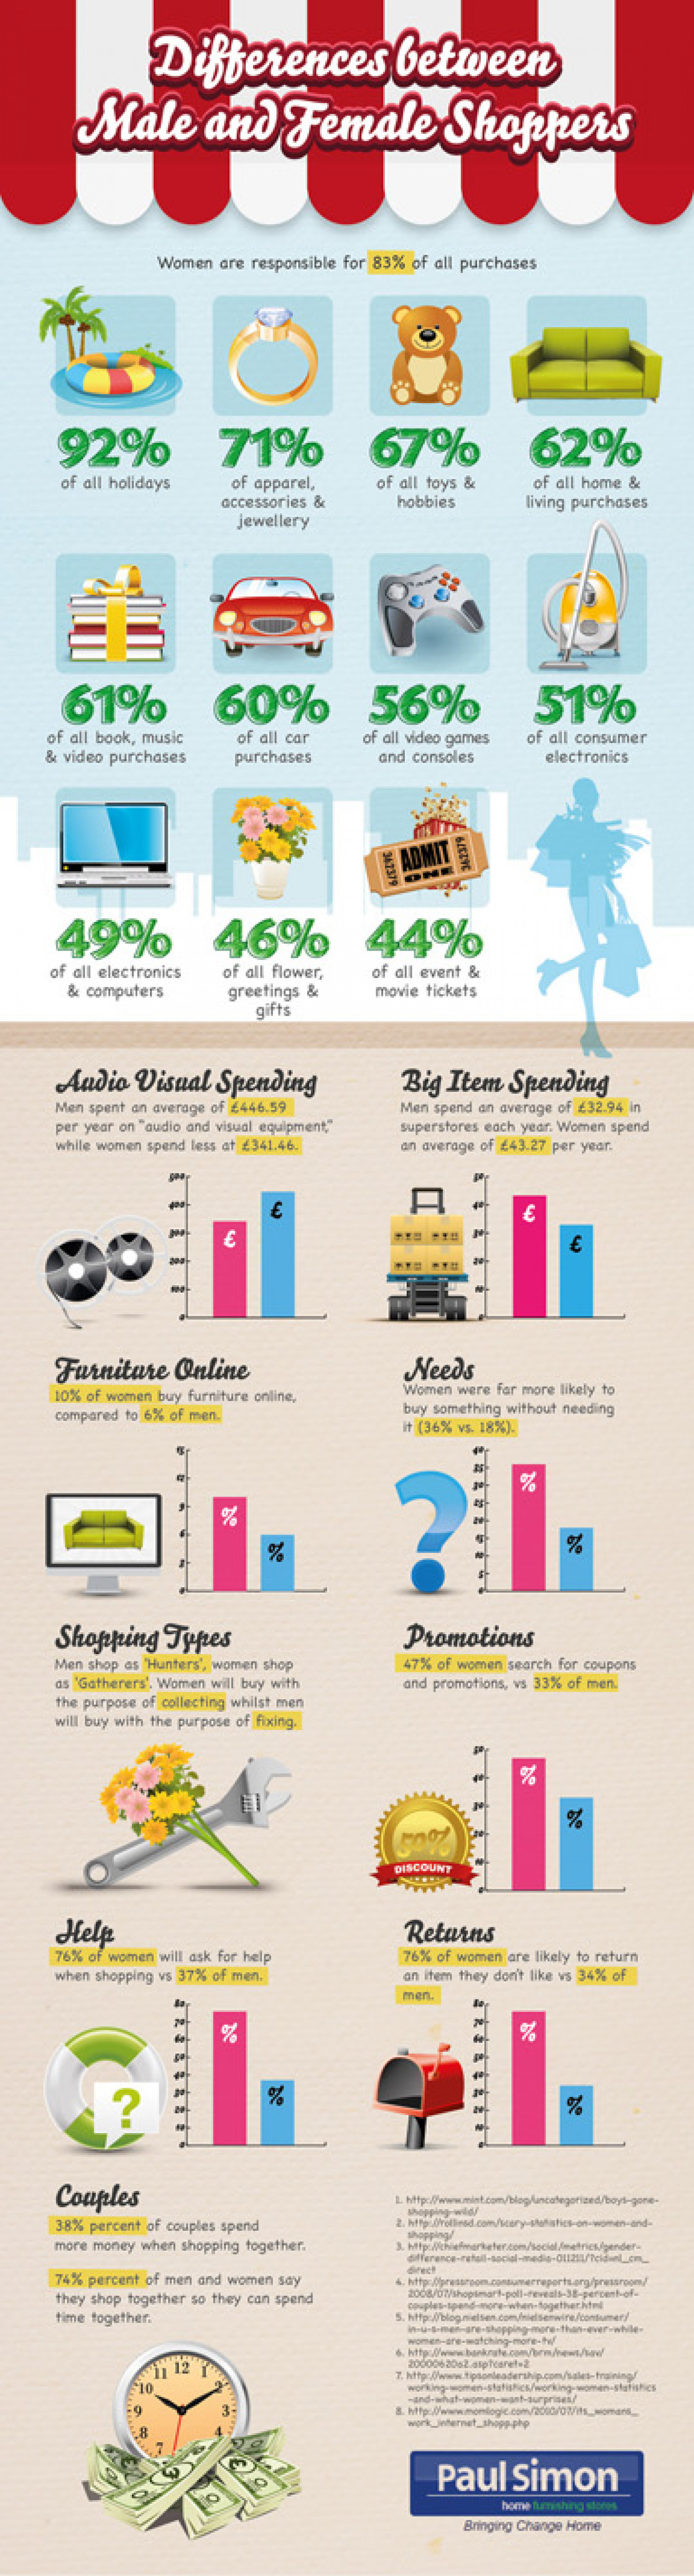 Differences Between Male and Female Shoppers Infographic